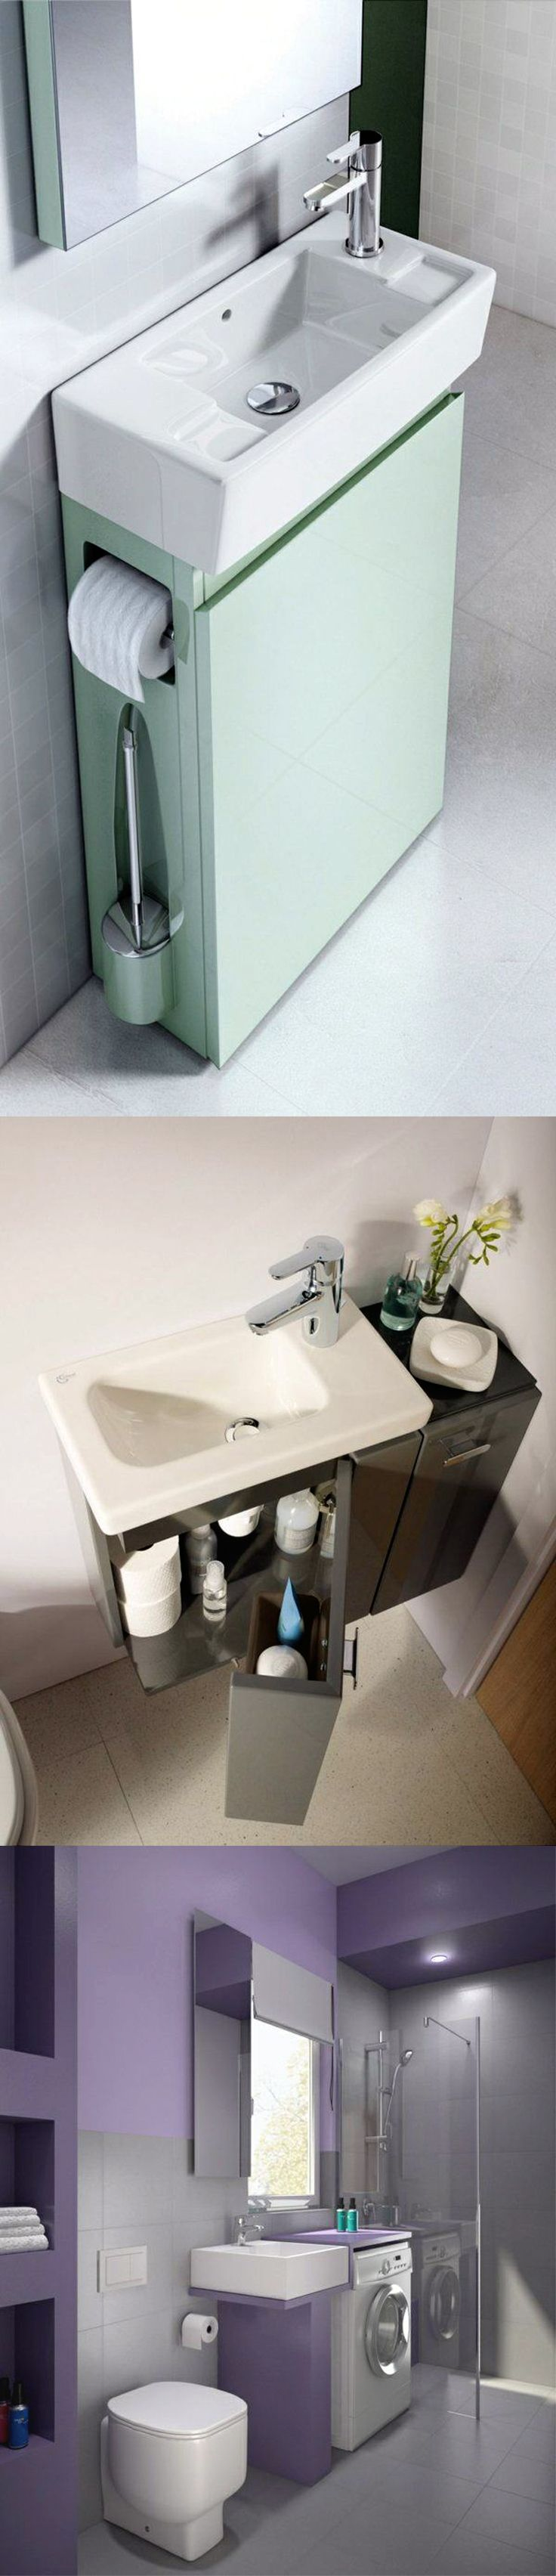 Best 25 sinks ideas on pinterest bathroom sinks for Inspiration kleines badezimmer